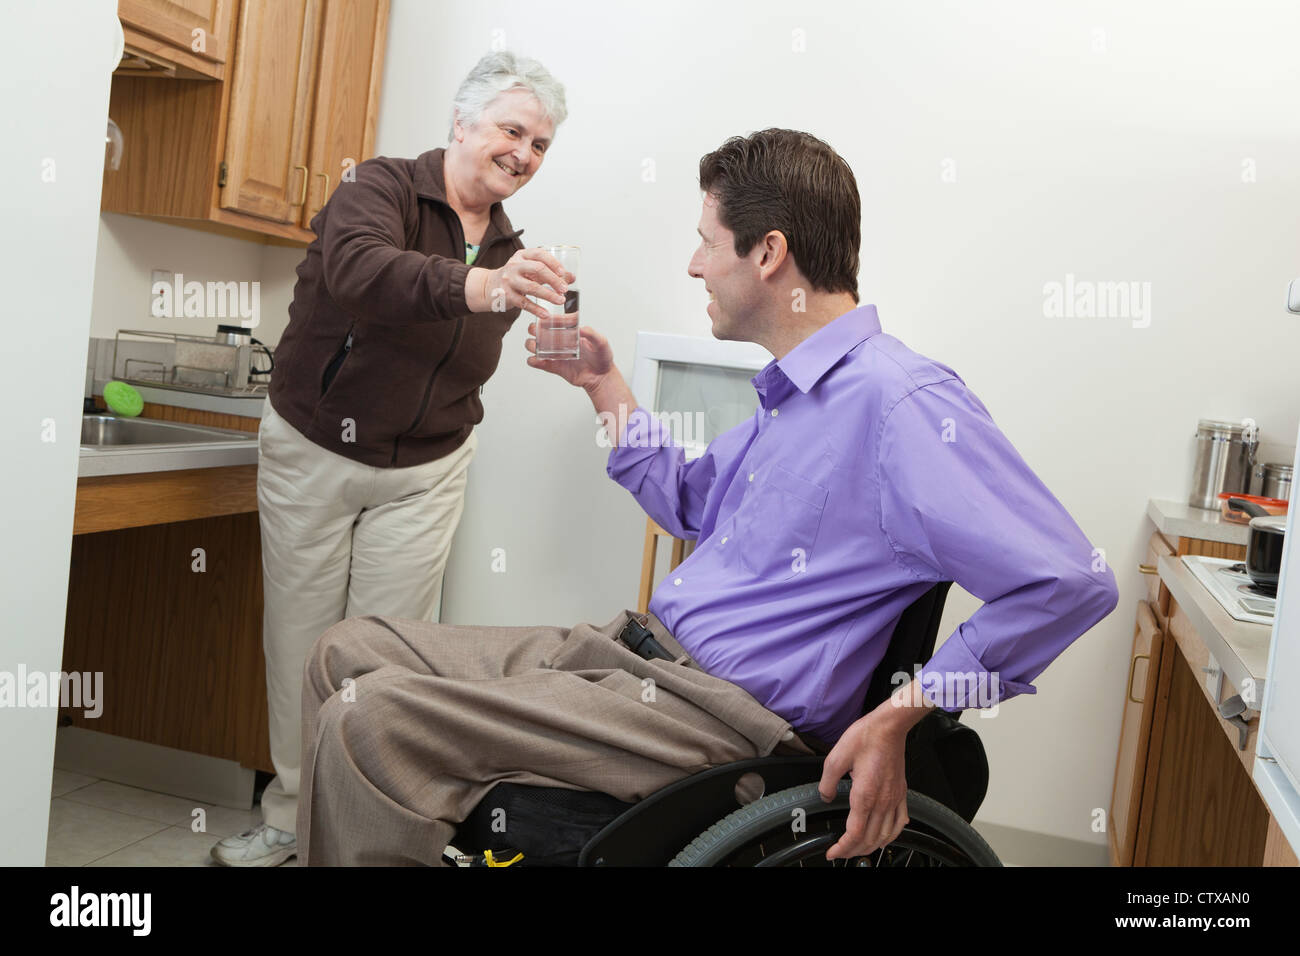 Home health aid offering a glass of water to a man in wheelchair with spinal cord injury - Stock Image